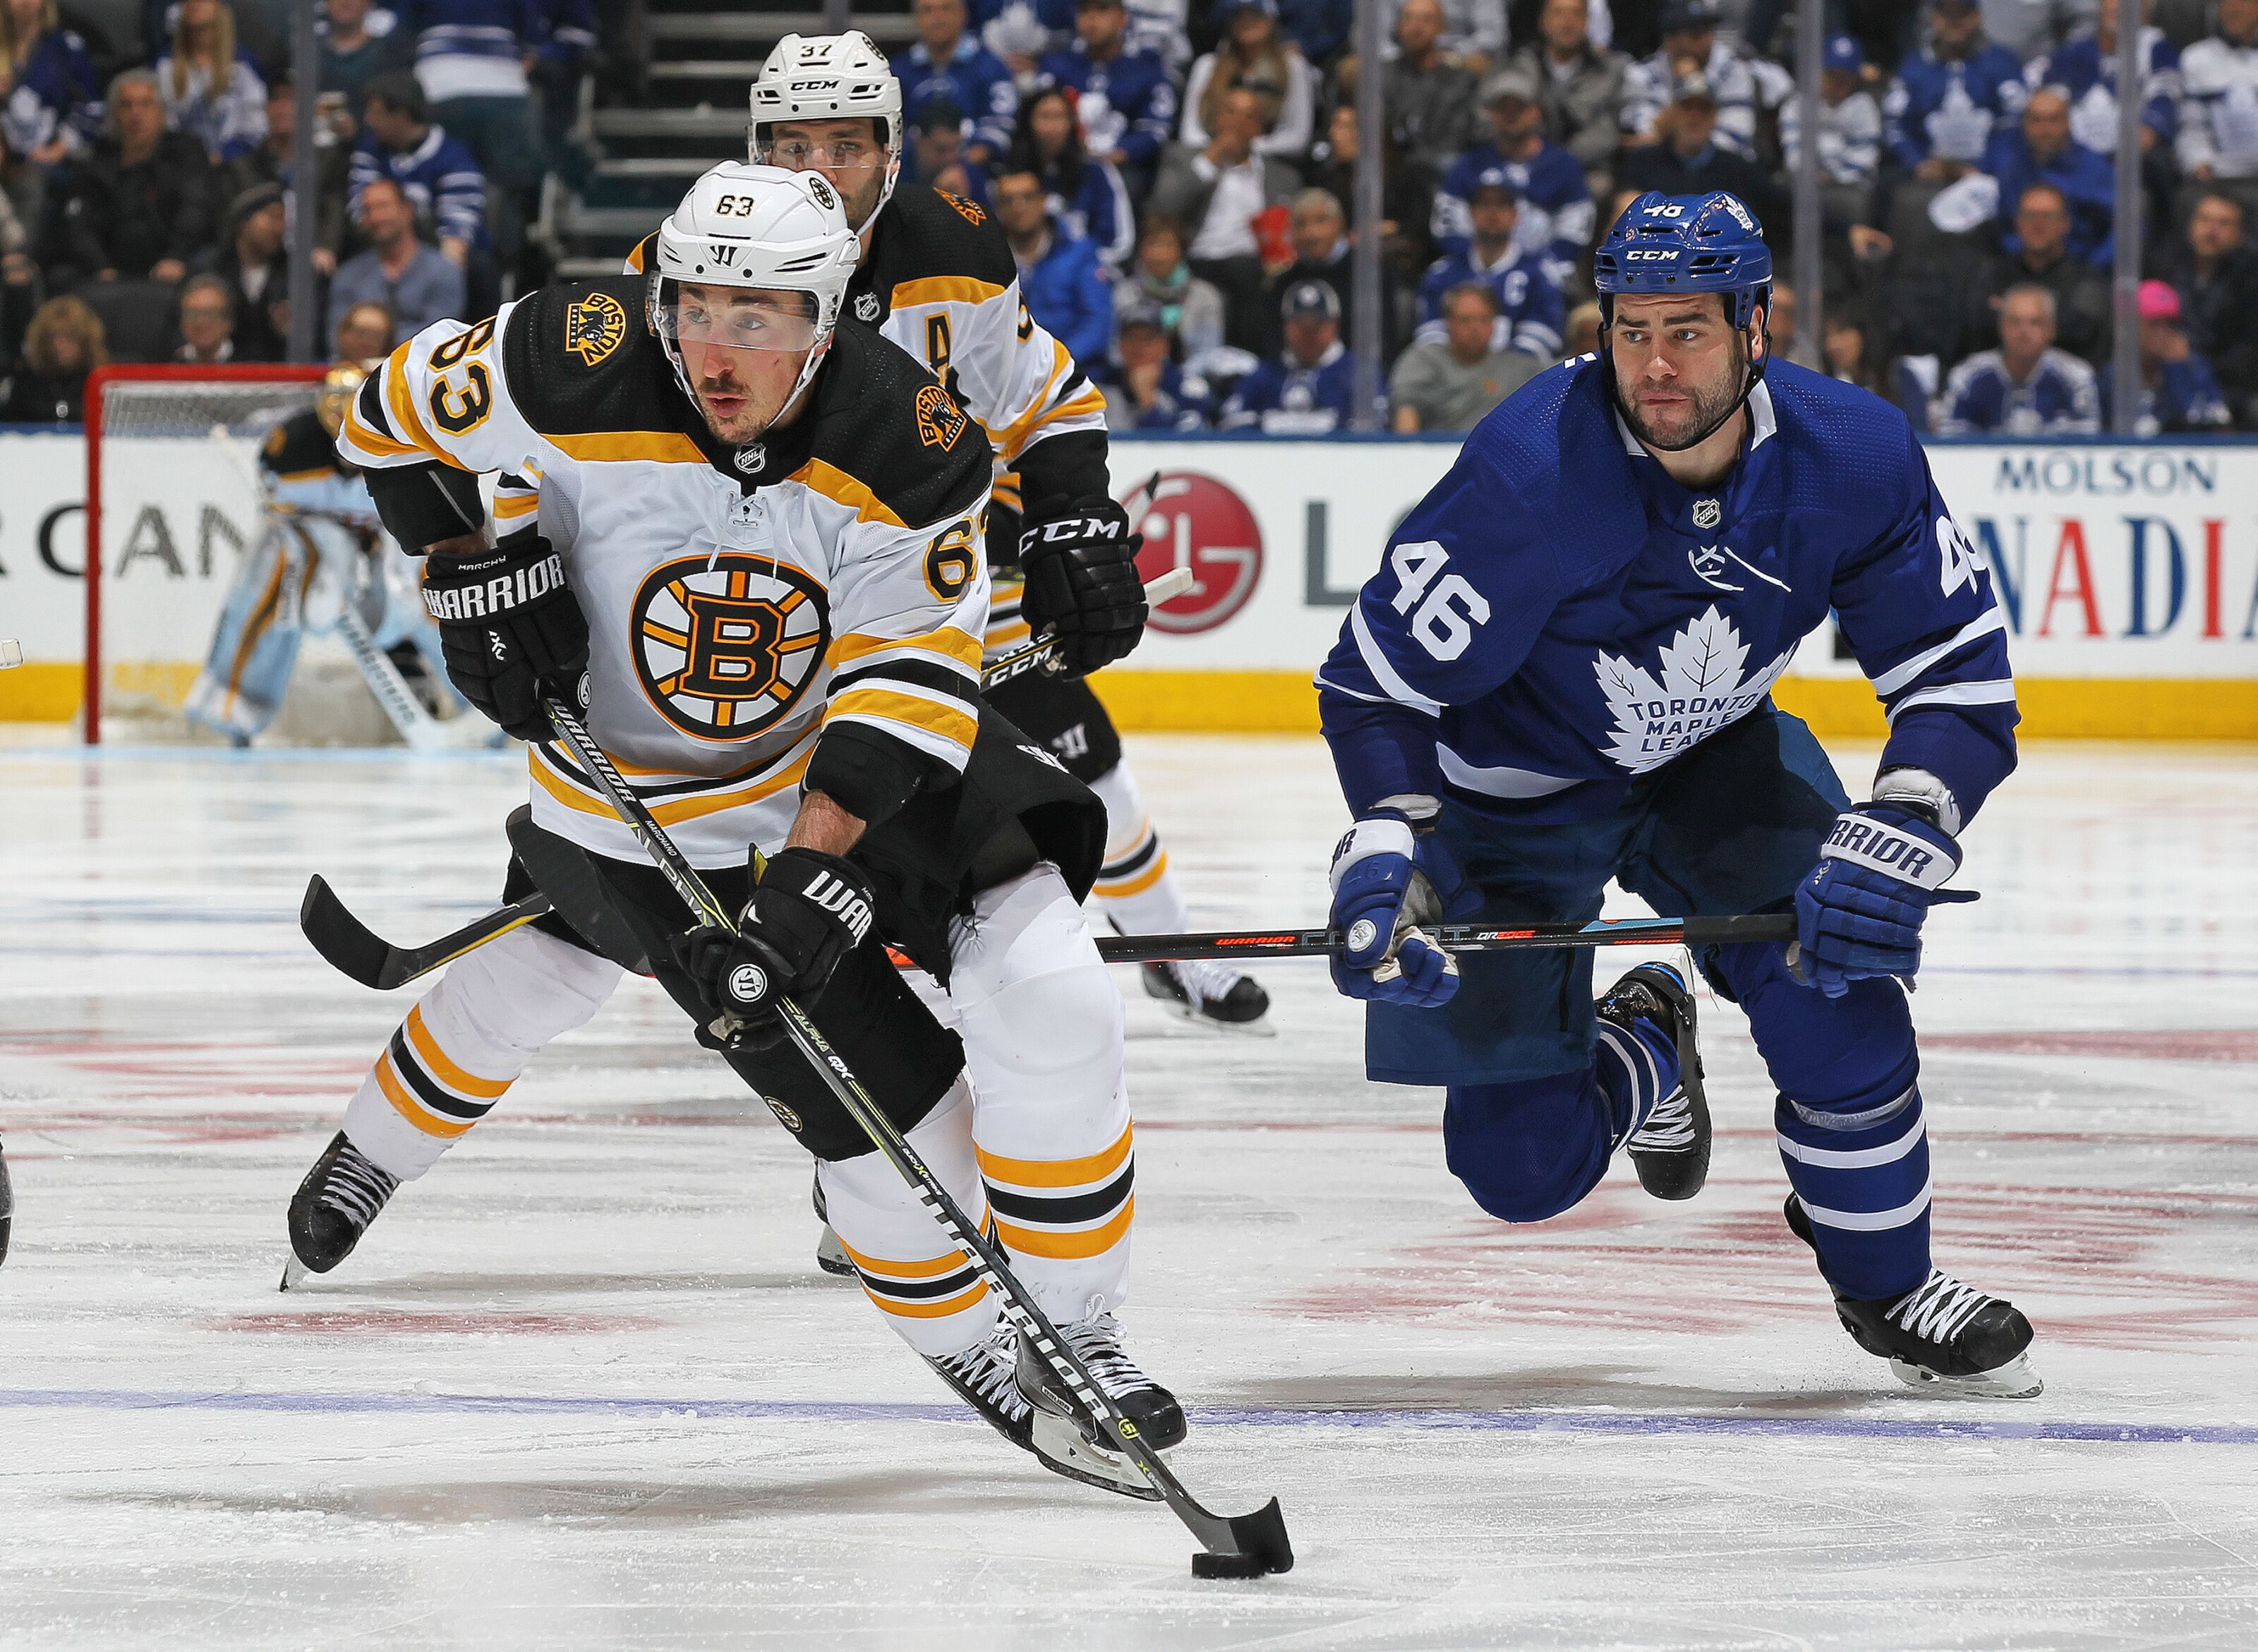 947255582-boston-bruins-v-toronto-maple-leafs-game-three.jpg